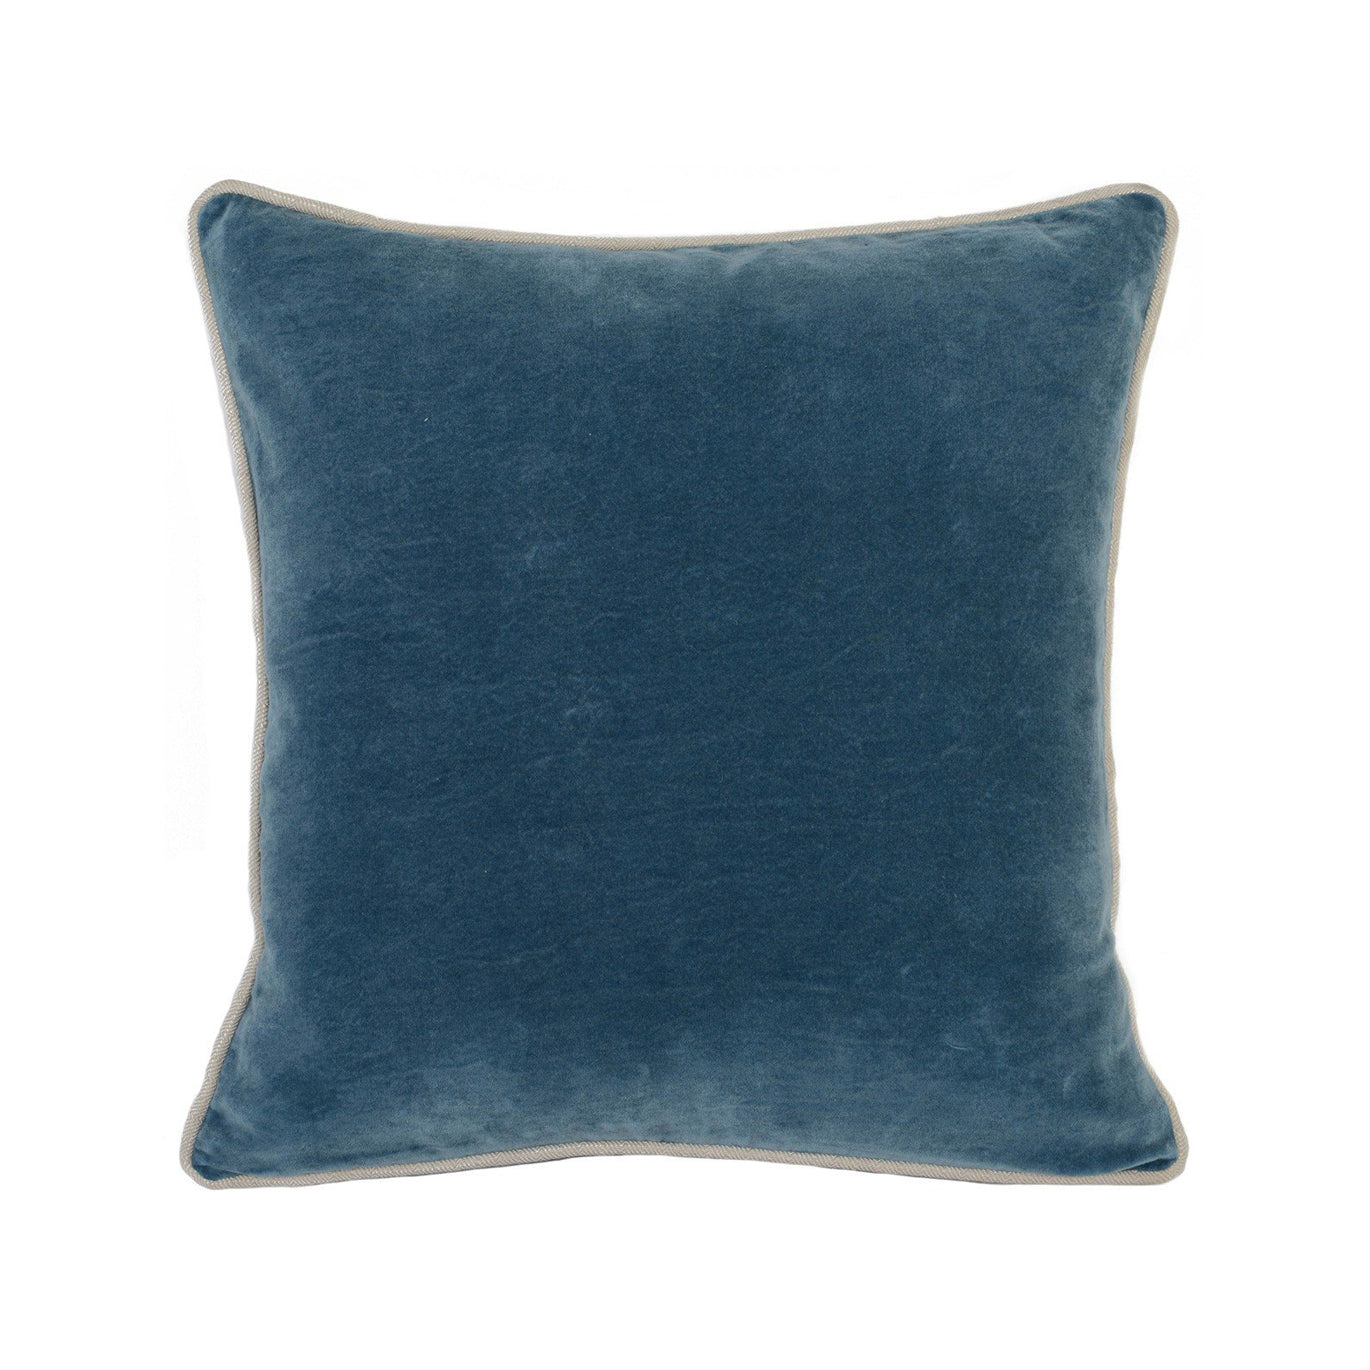 Marine Velvet Pillow - Design Distillery